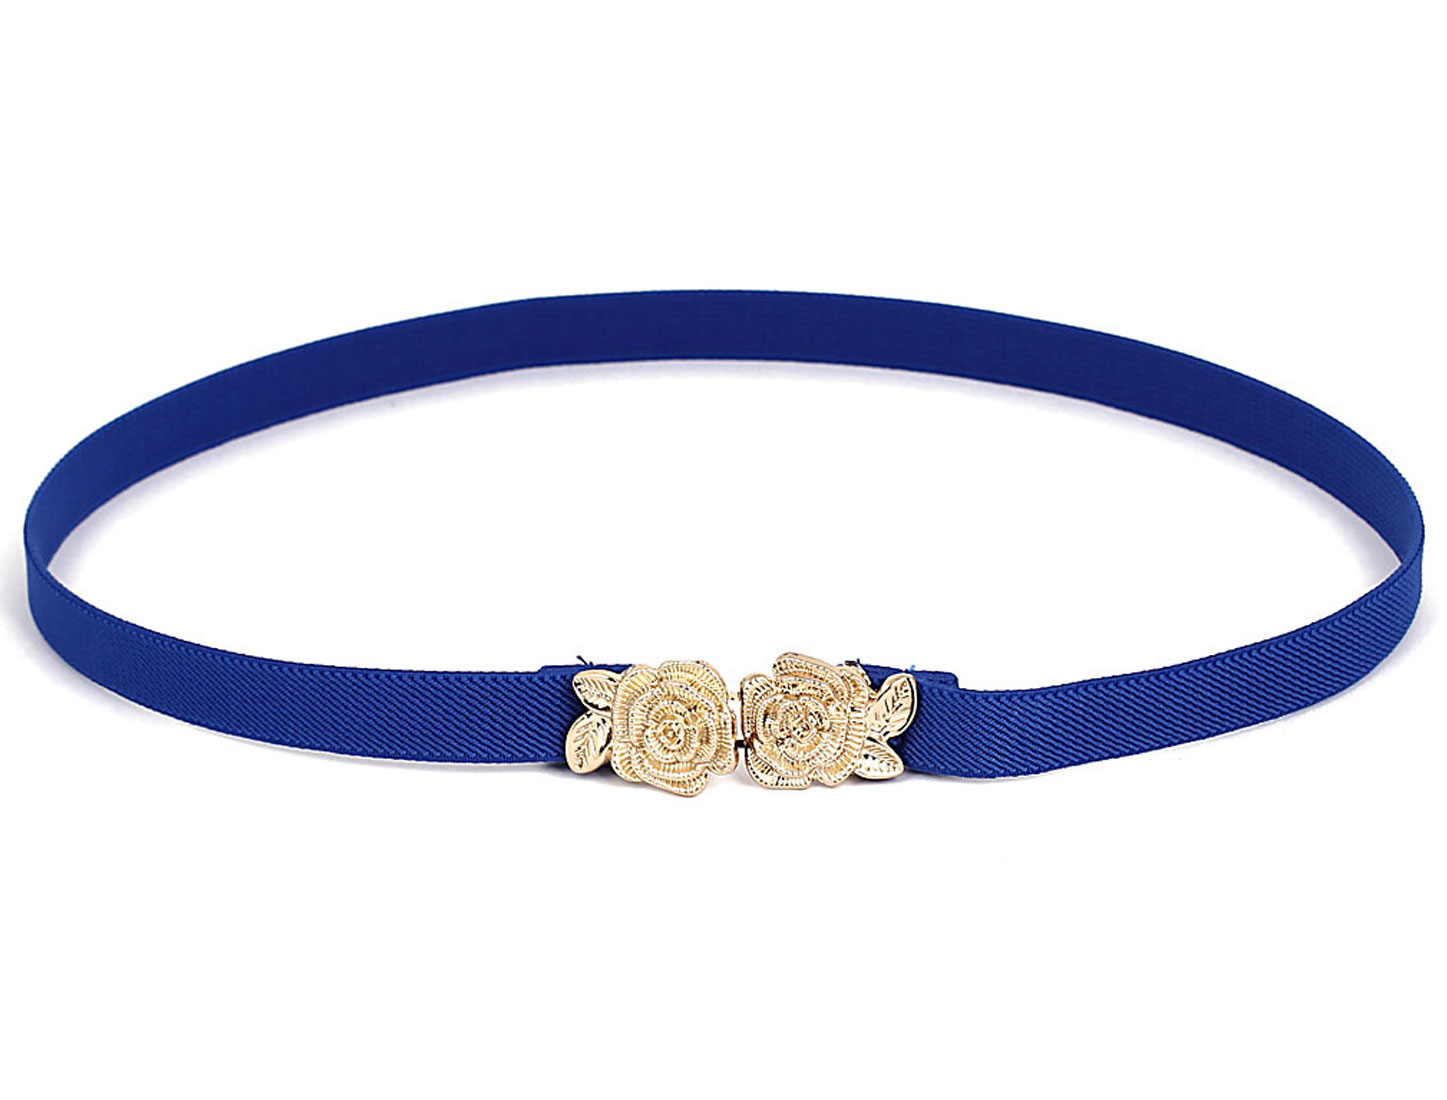 Lady Flower Shape Interlocking Buckle Elastic Band Waist Cinch Belt Blue